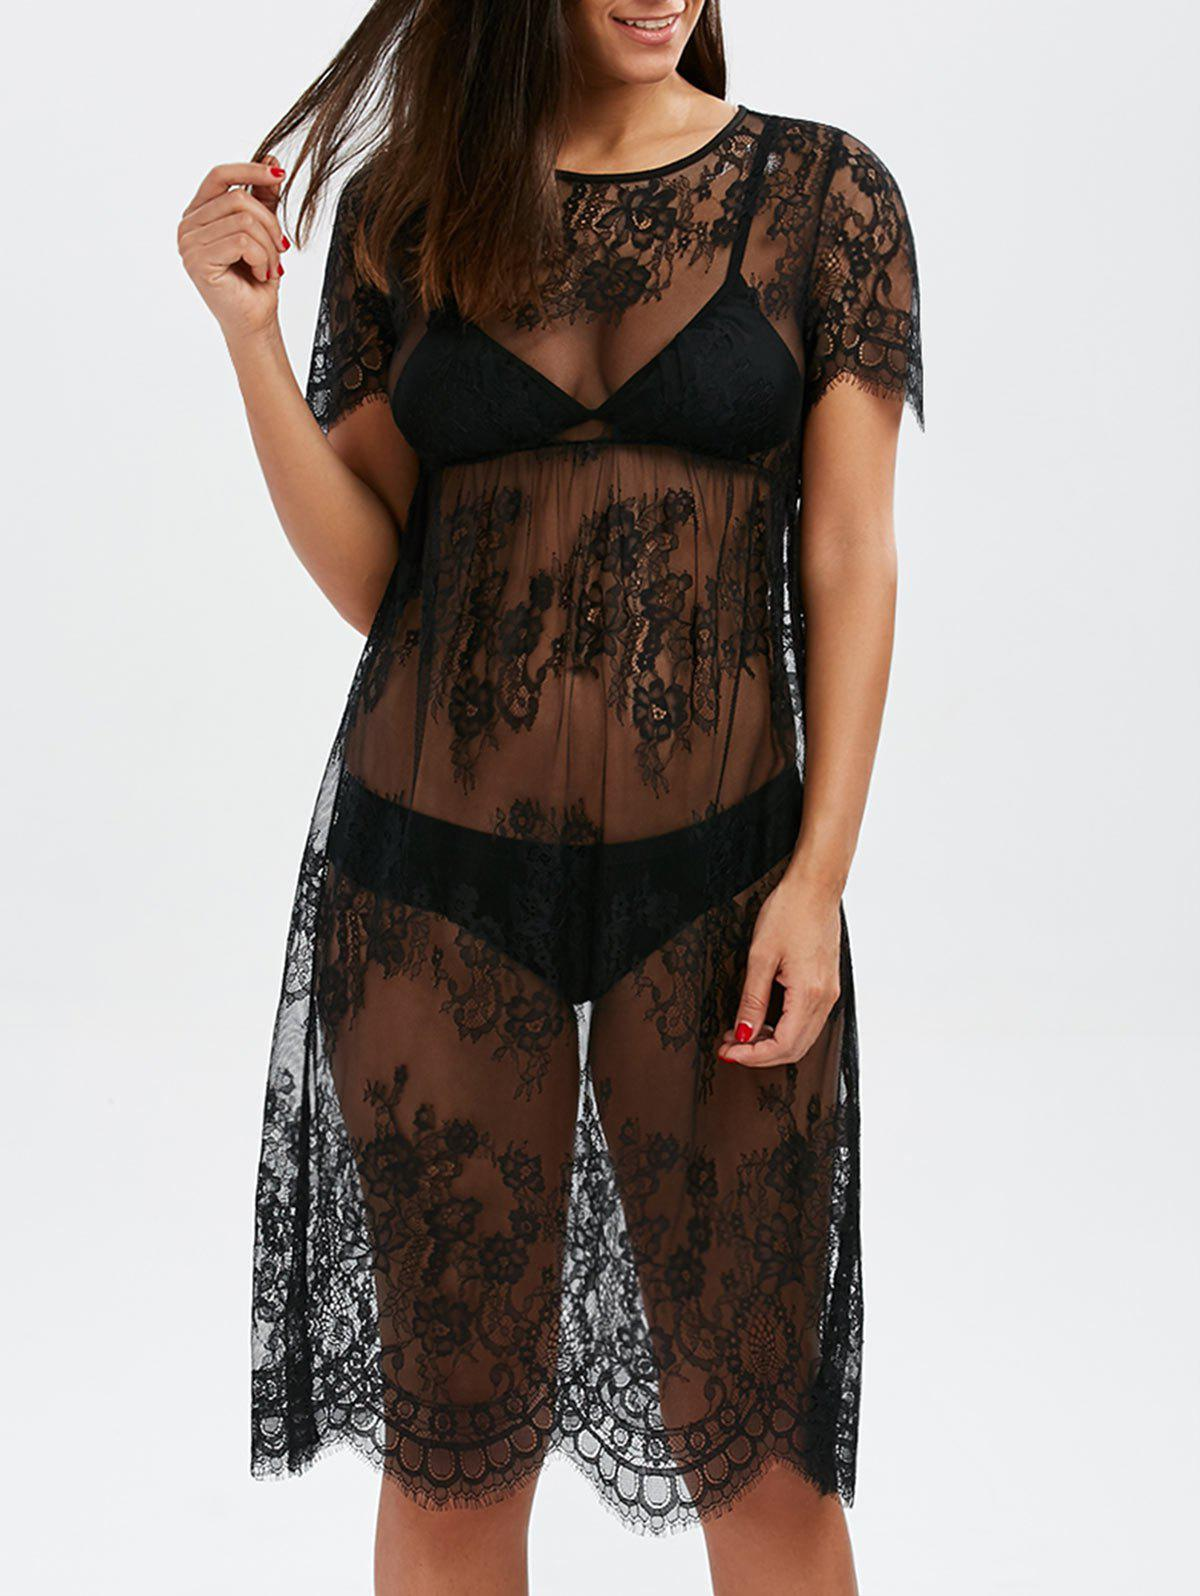 Discount Scalloped Lace Sheer Cover Up Dress for Beach